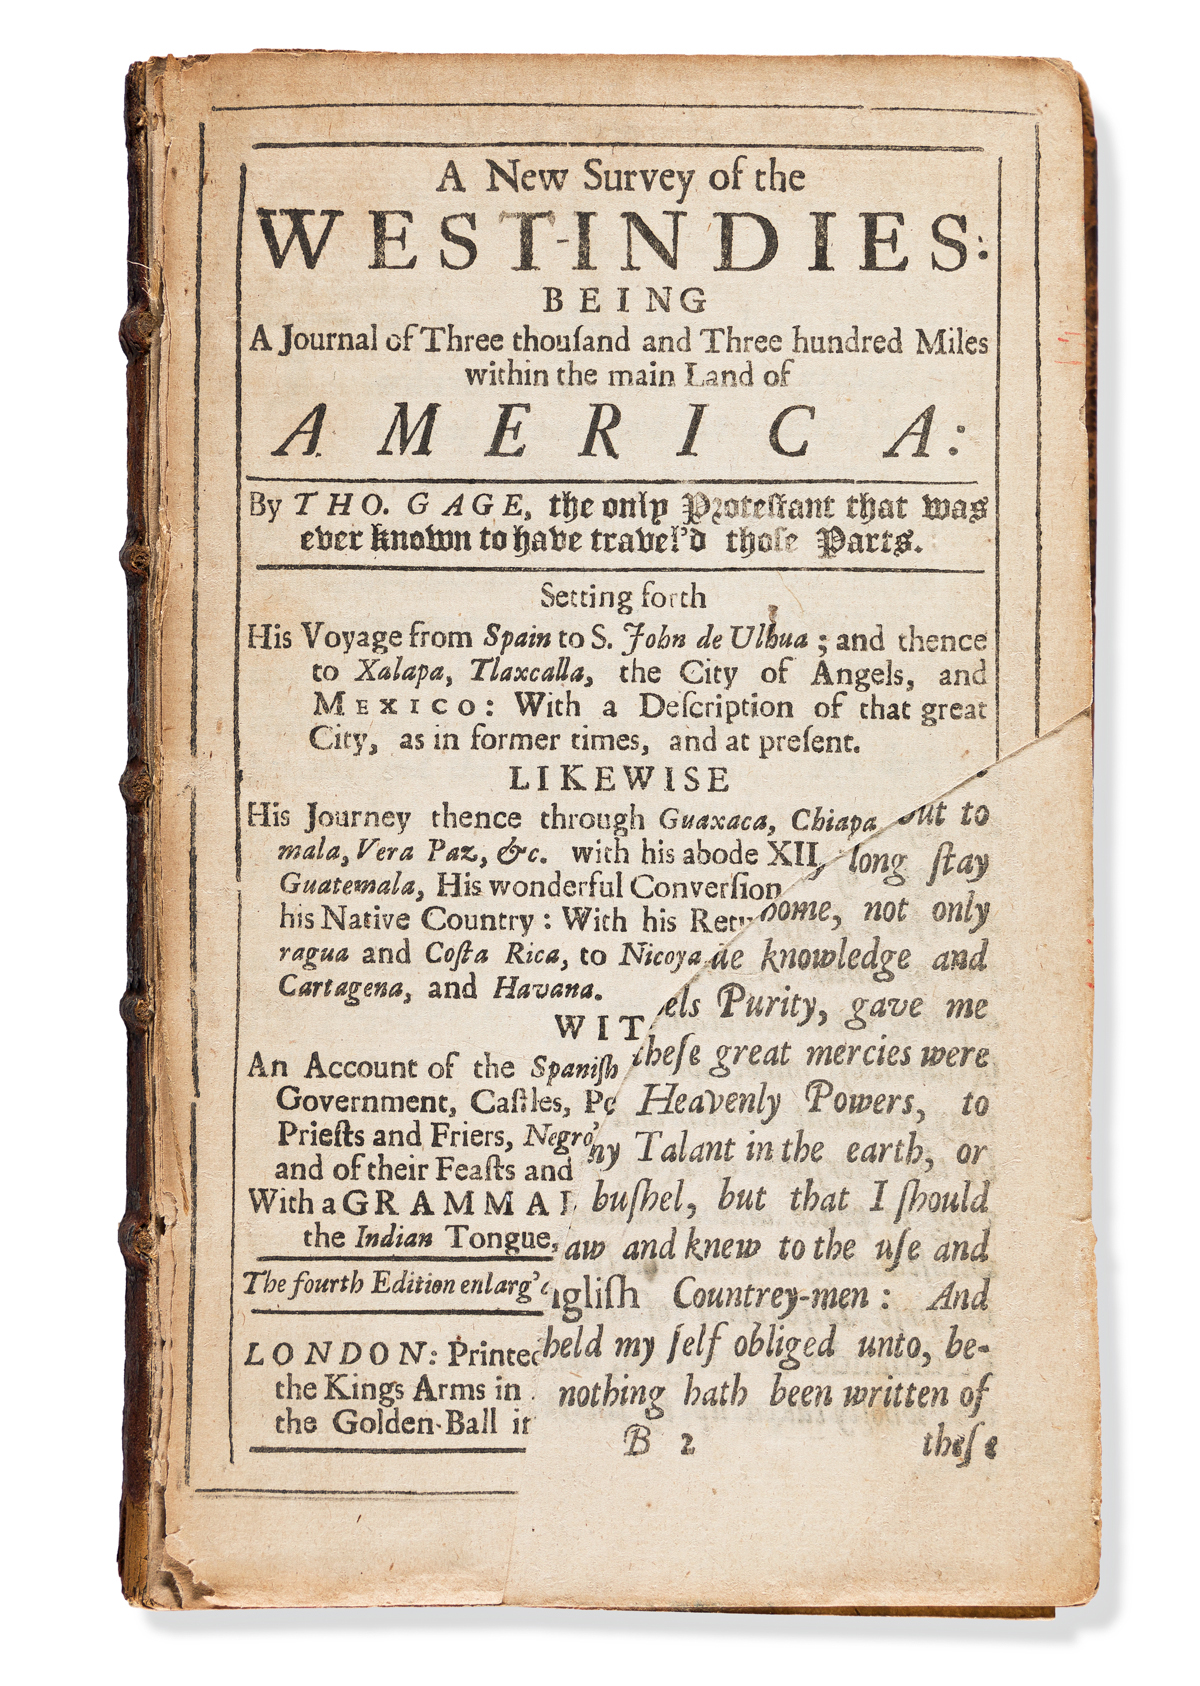 Gage, Thomas (1603?-1656) A New Survey of the West-Indies. Being, a Journal of Three Thousand and Three Hundred Miles within the Main L